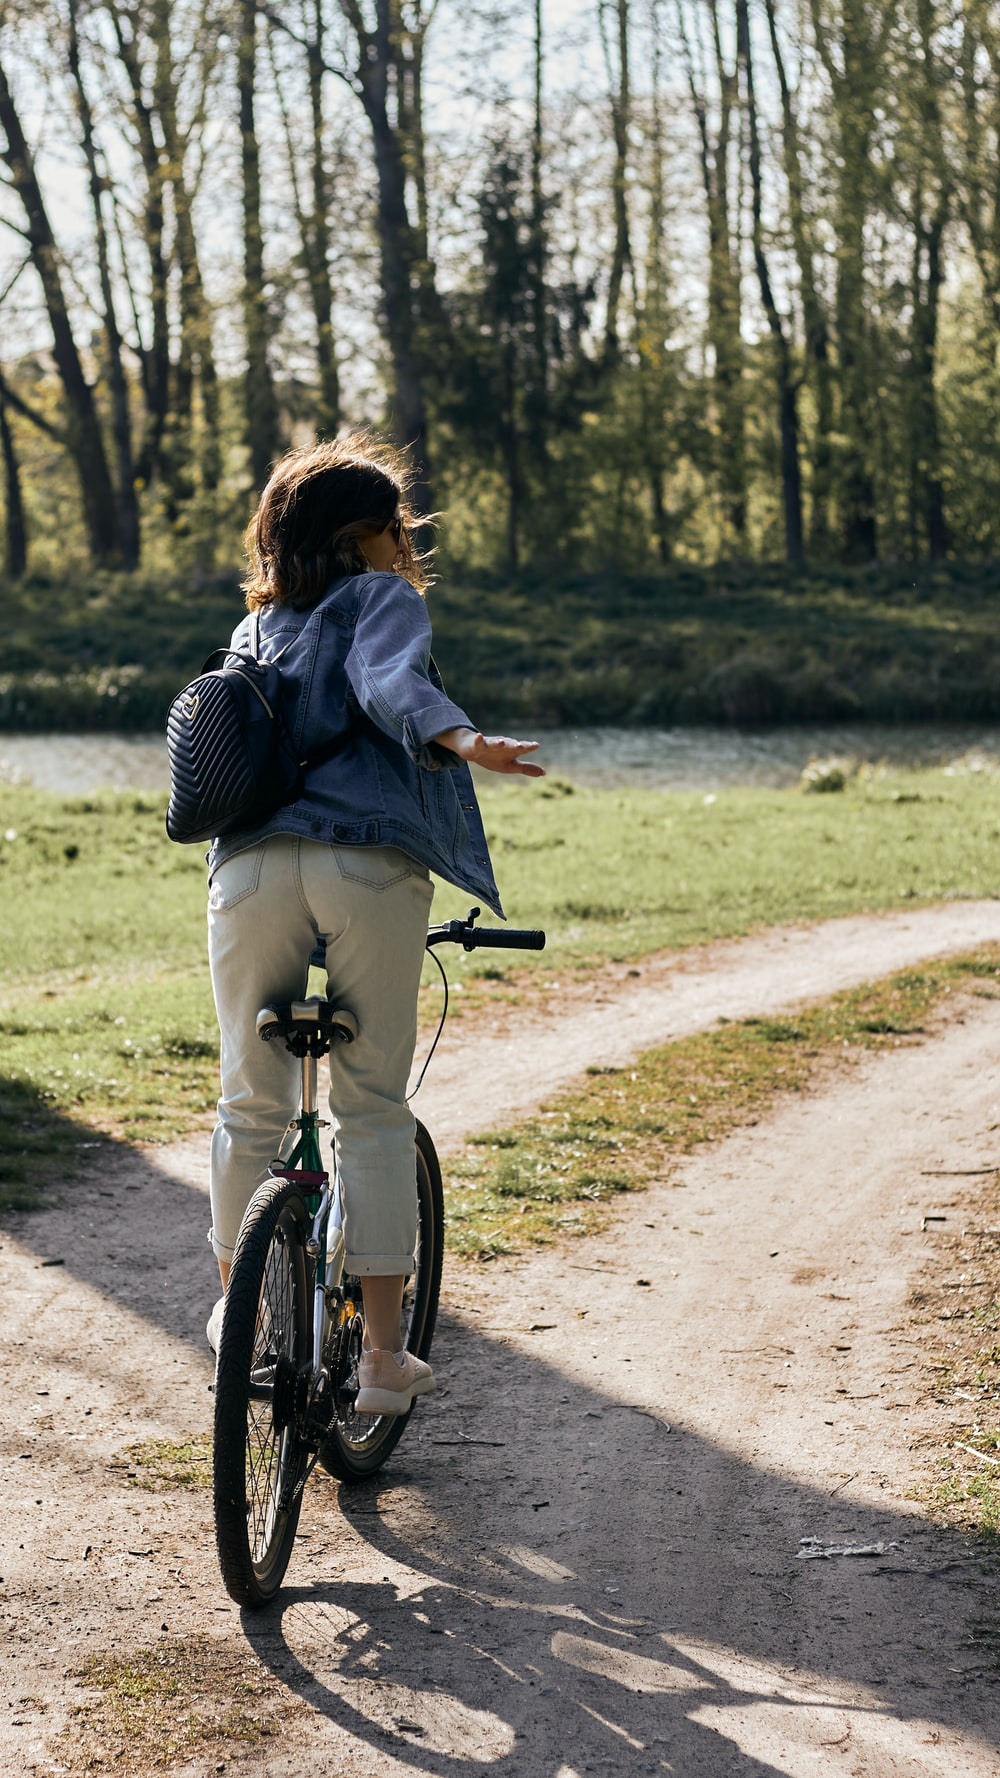 woman in black and white stripe long sleeve shirt riding on bicycle on road during daytime